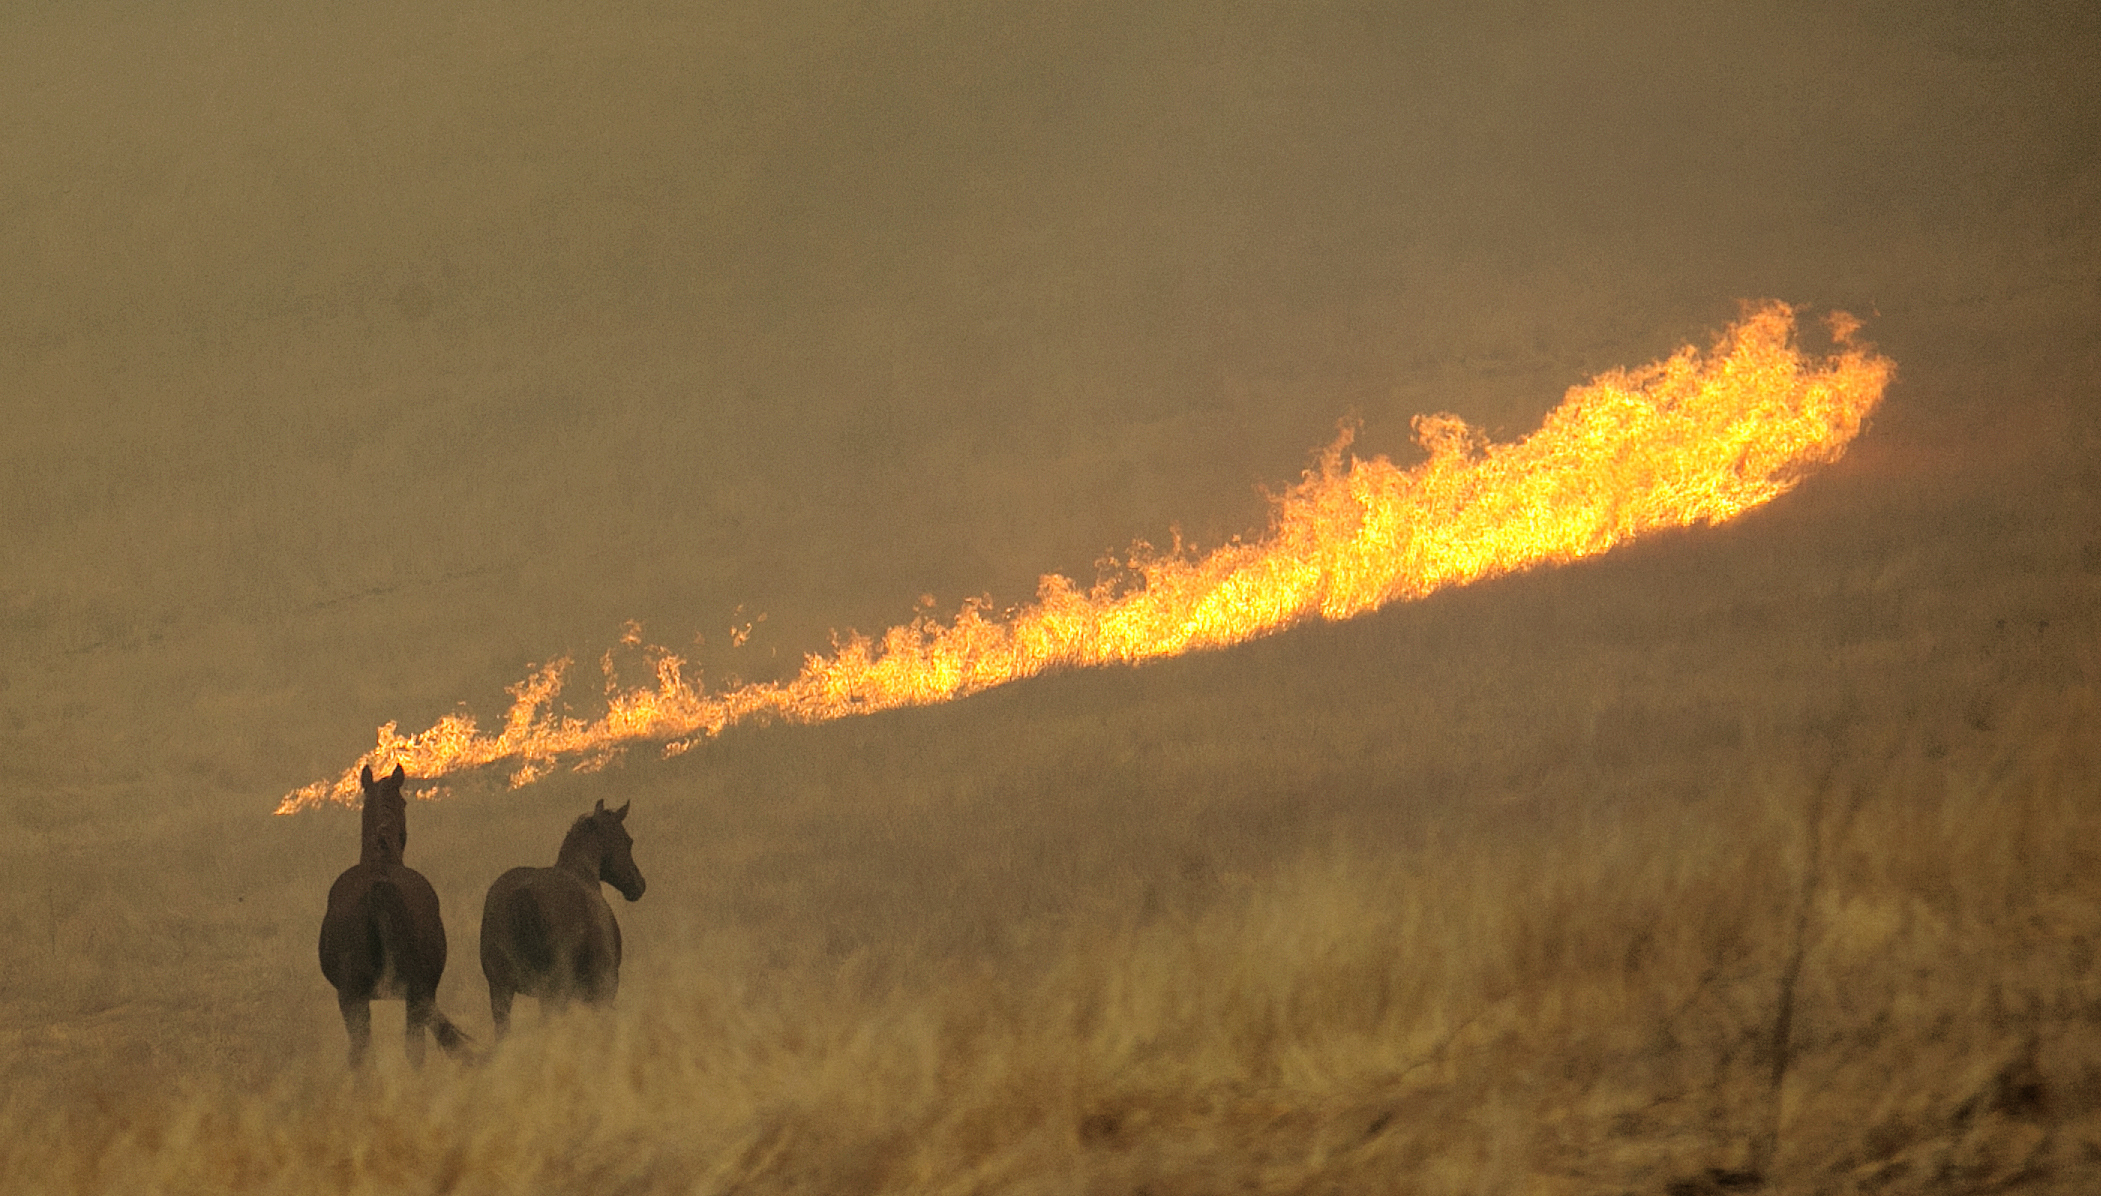 "<div class=""meta image-caption""><div class=""origin-logo origin-image none""><span>none</span></div><span class=""caption-text"">Flames from a wildfire approach a pair of horses in a field Monday, Oct. 9, 2017, in Napa, Calif. (Rich Pedroncelli/AP Photo)</span></div>"